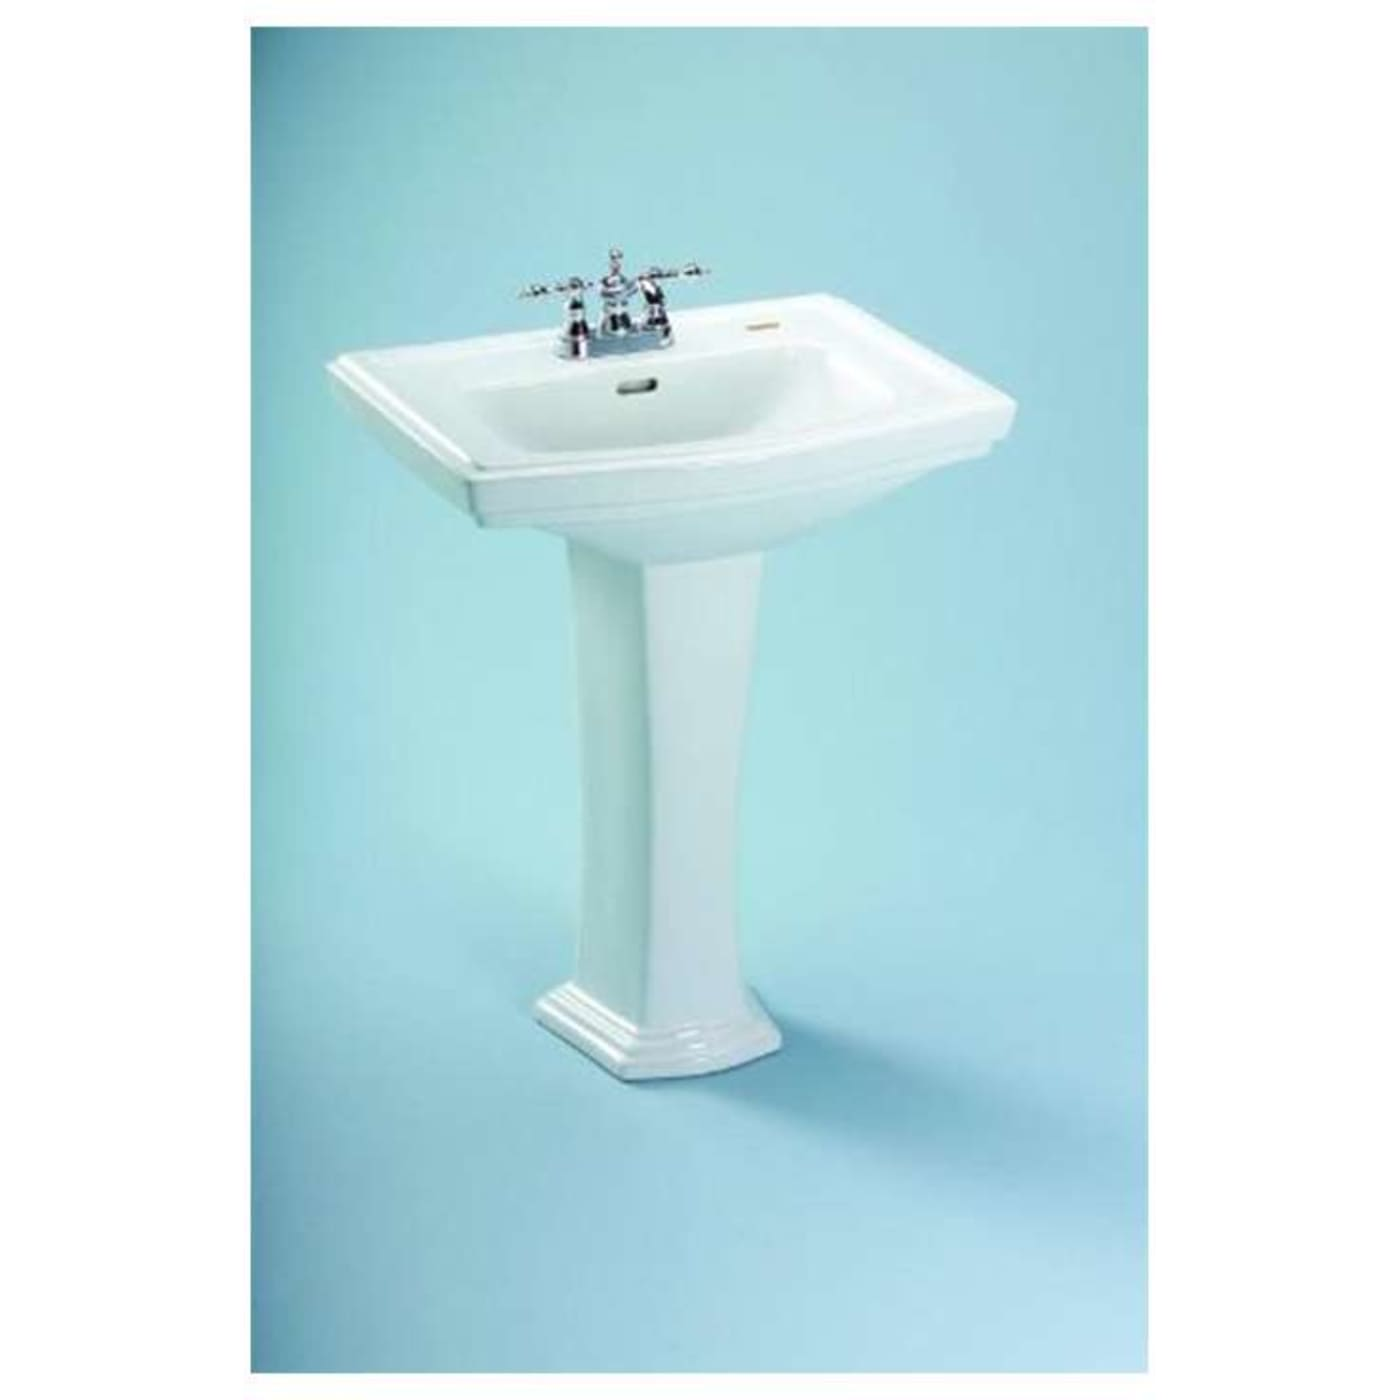 Toto Clayton Pedestal Vitreous China Bathroom Sink LPT780.8#11 ...